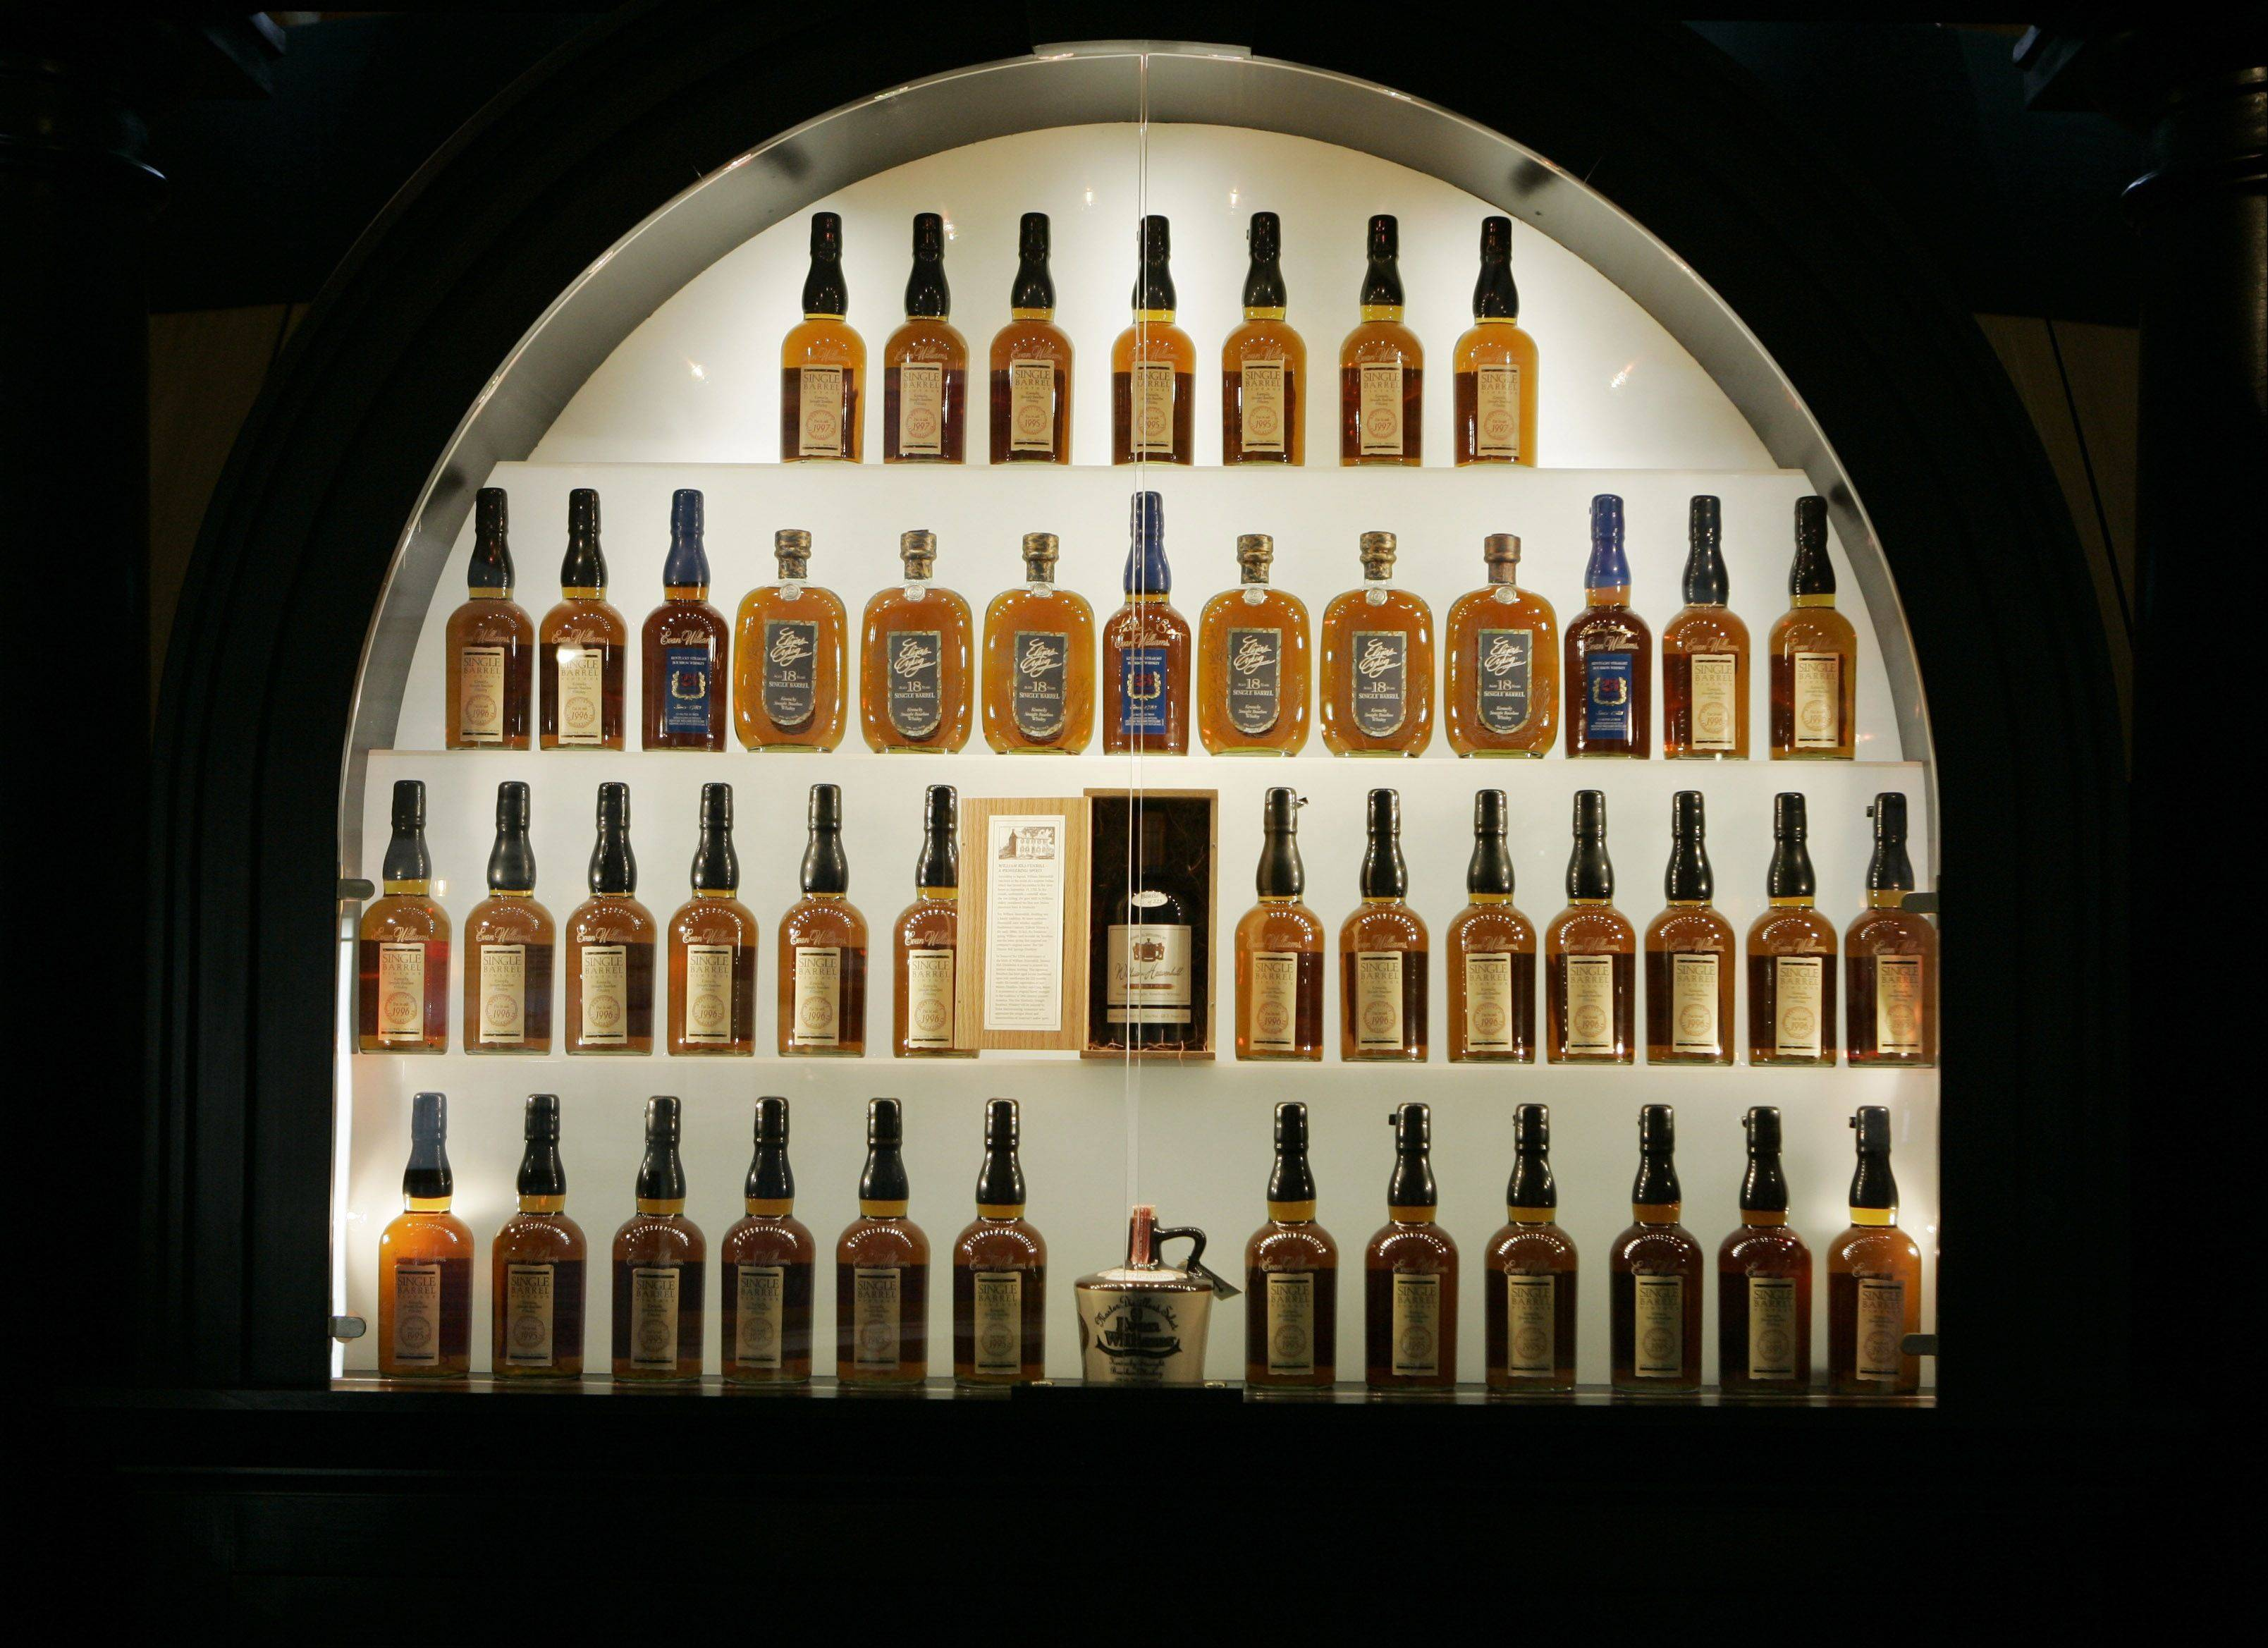 Bottles of bourbon in a display case at the Heaven Hill Bourbon Heritage Center in Bardstown , Ky.